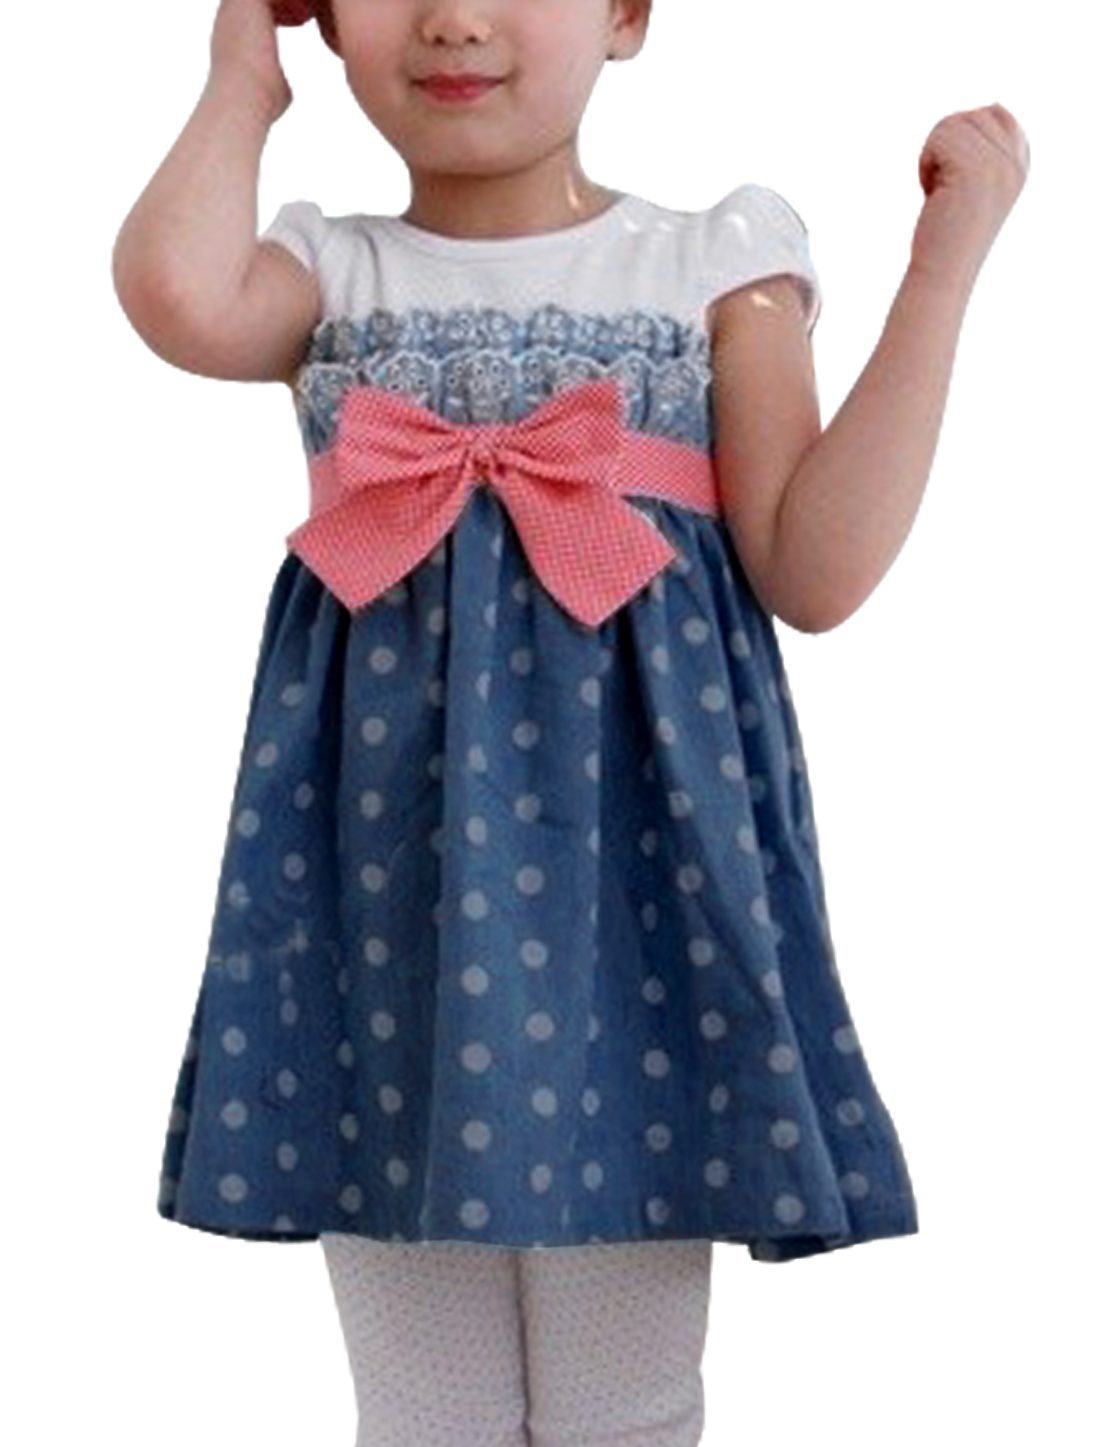 Pullover Round Neck Cap Sleeve Dots Pattern Blue Dress for Girls 12 Month